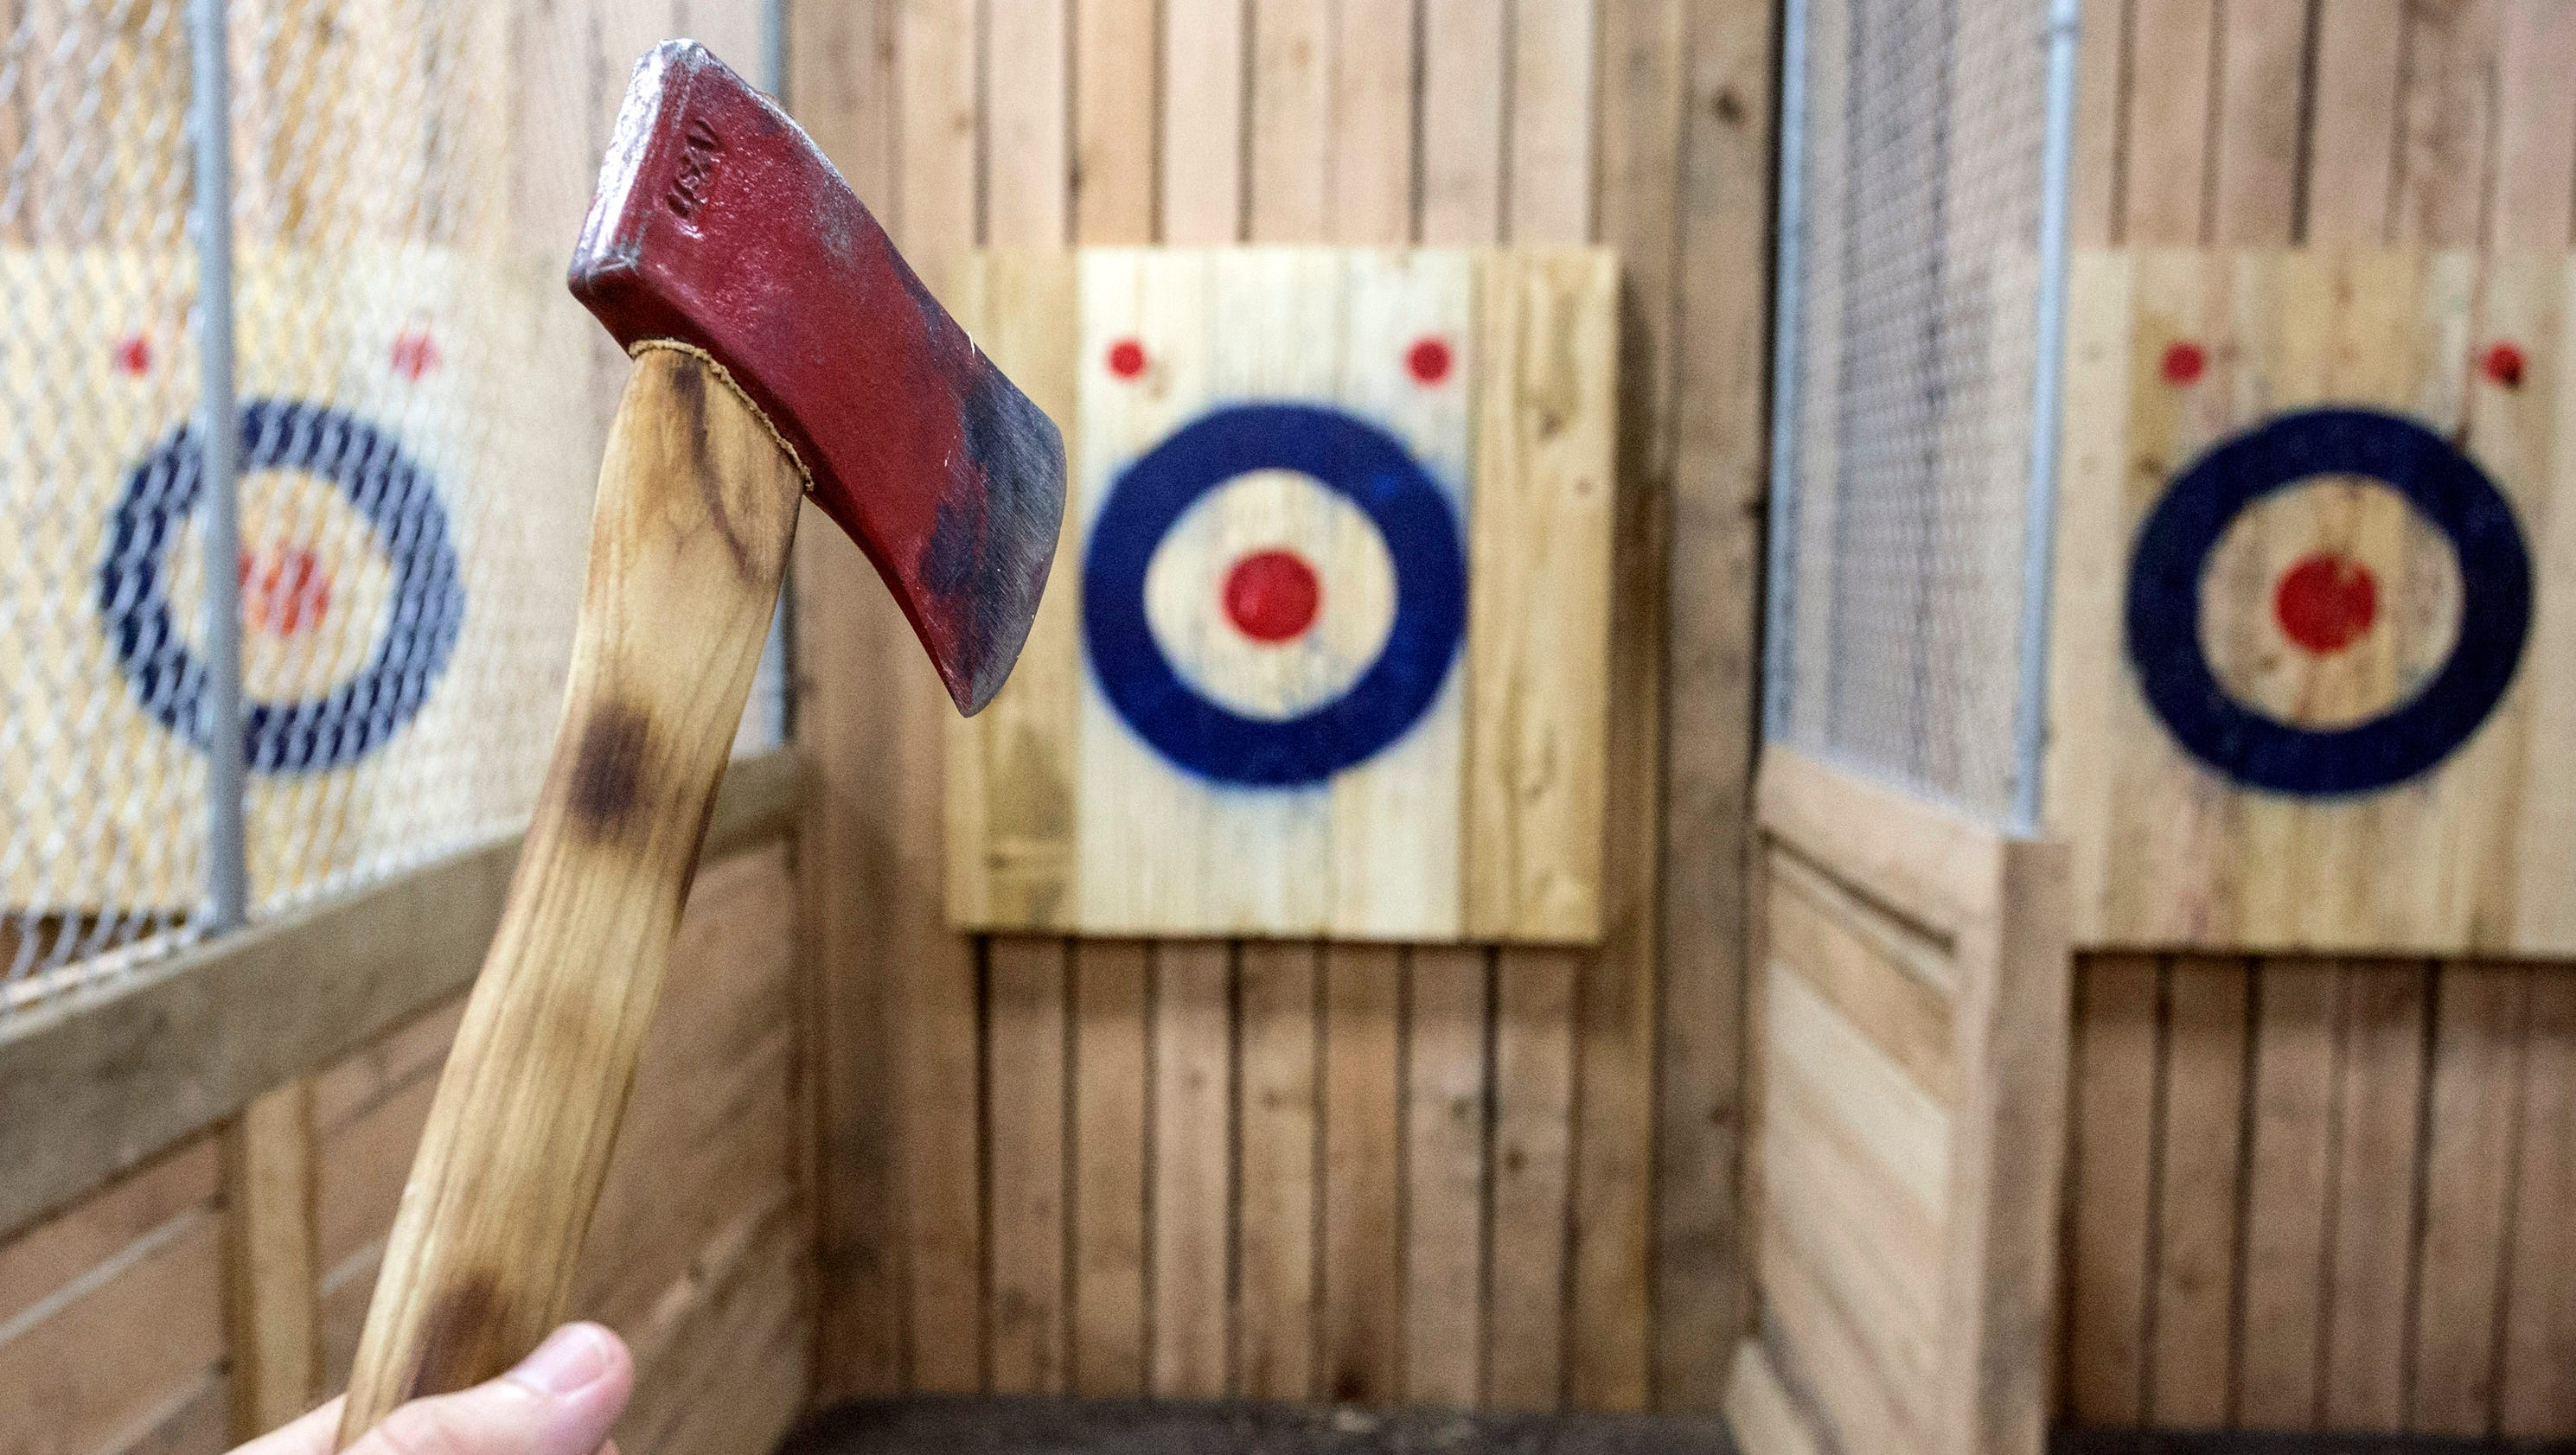 Forget darts. Flying axes sounds like a better bar game, right?